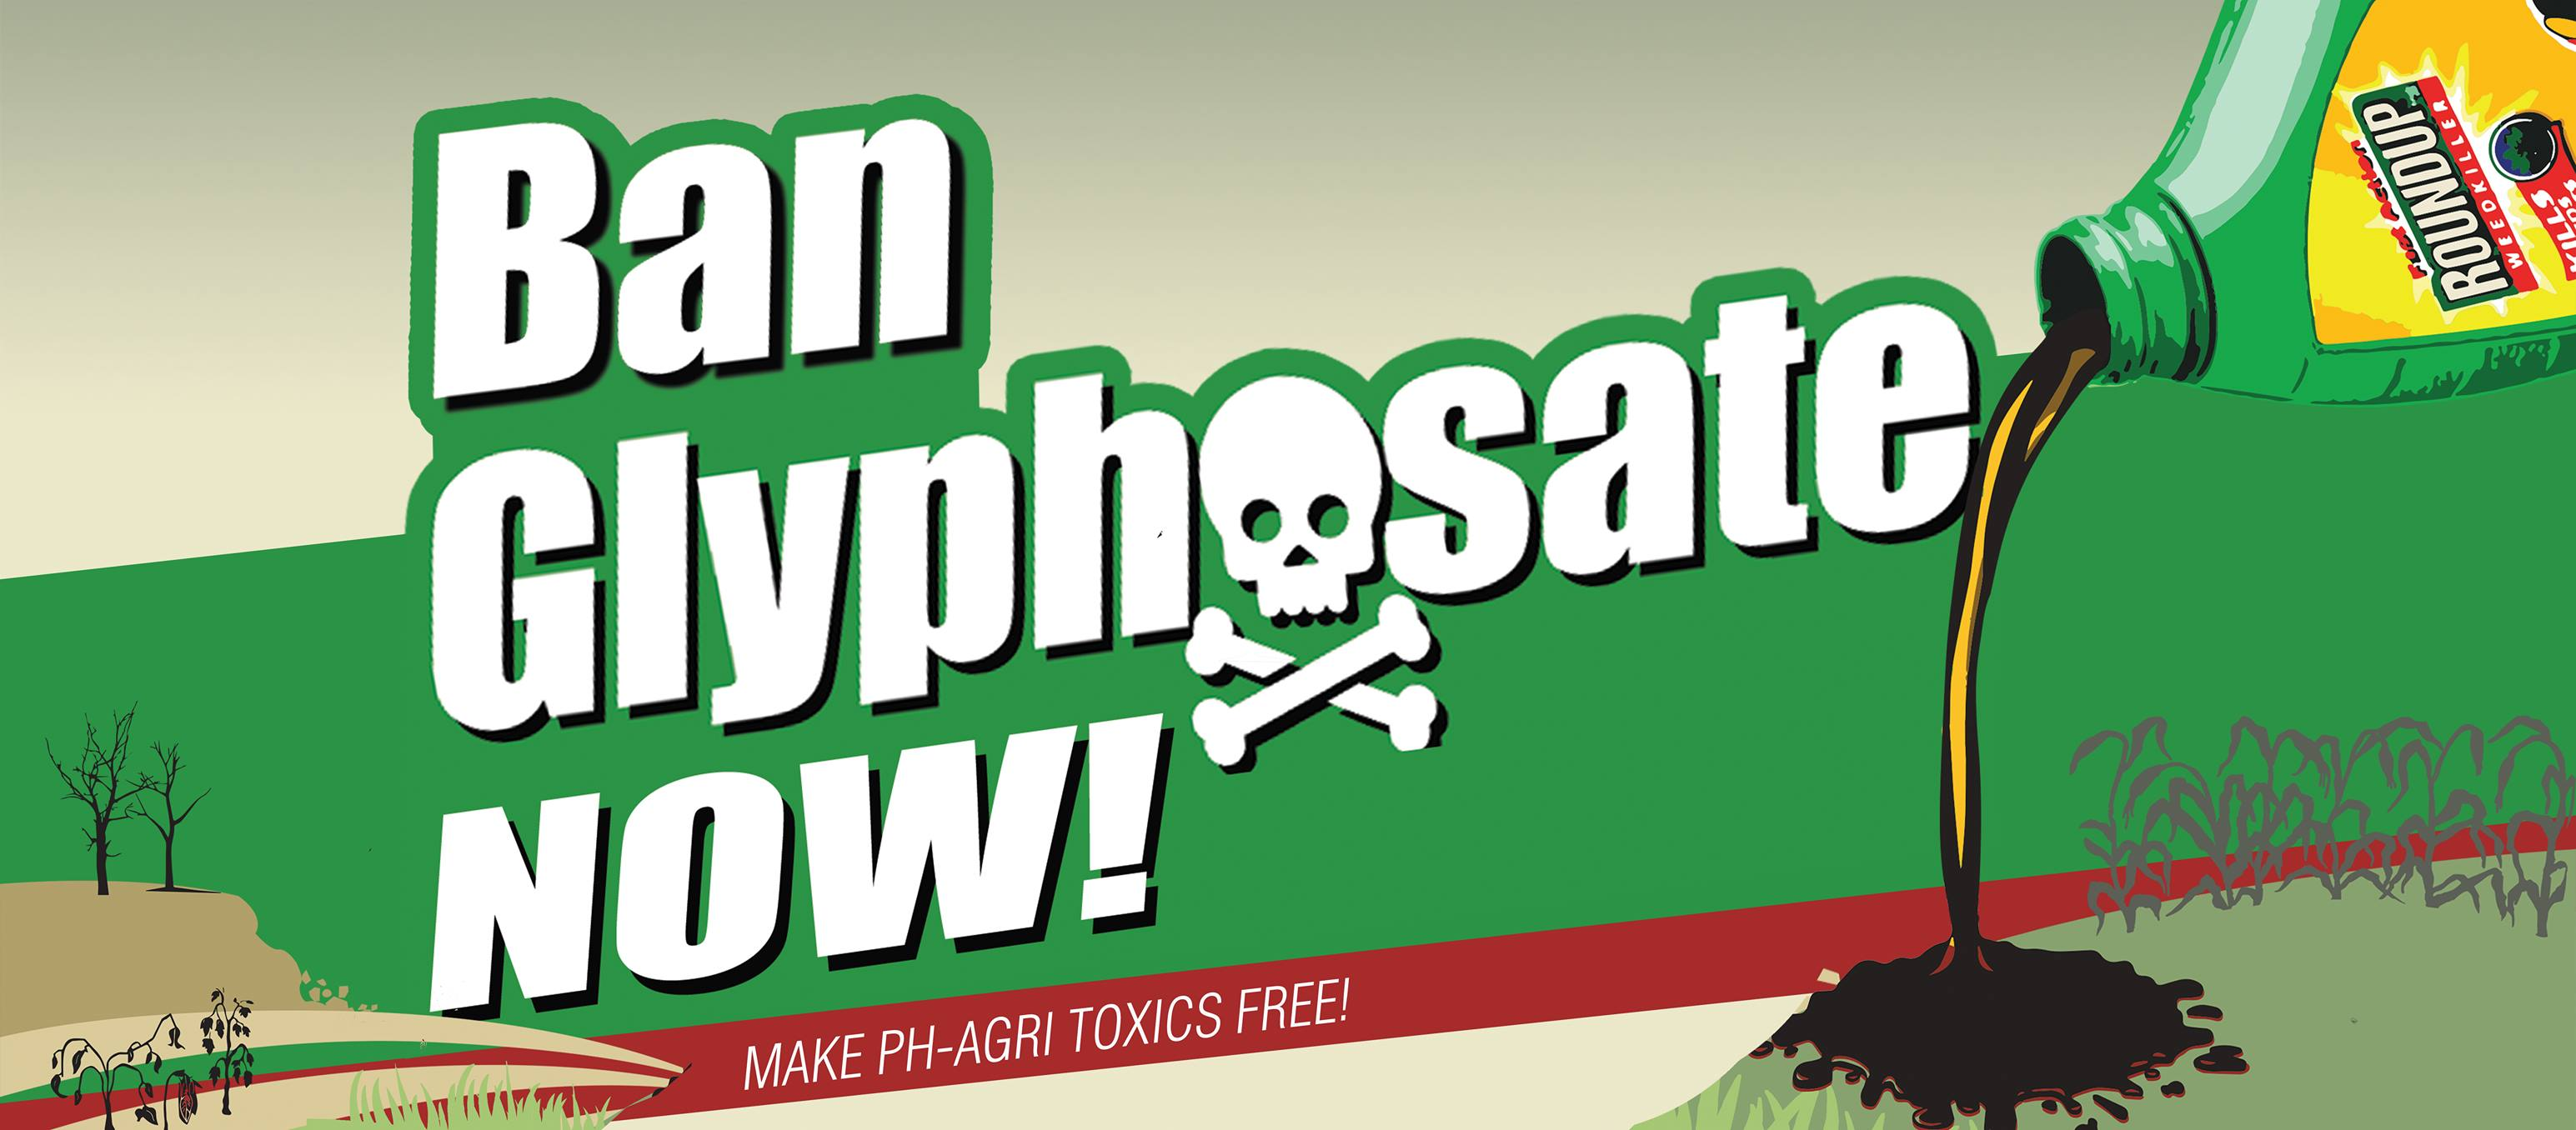 Public launching on the results of the Glyphosate Study